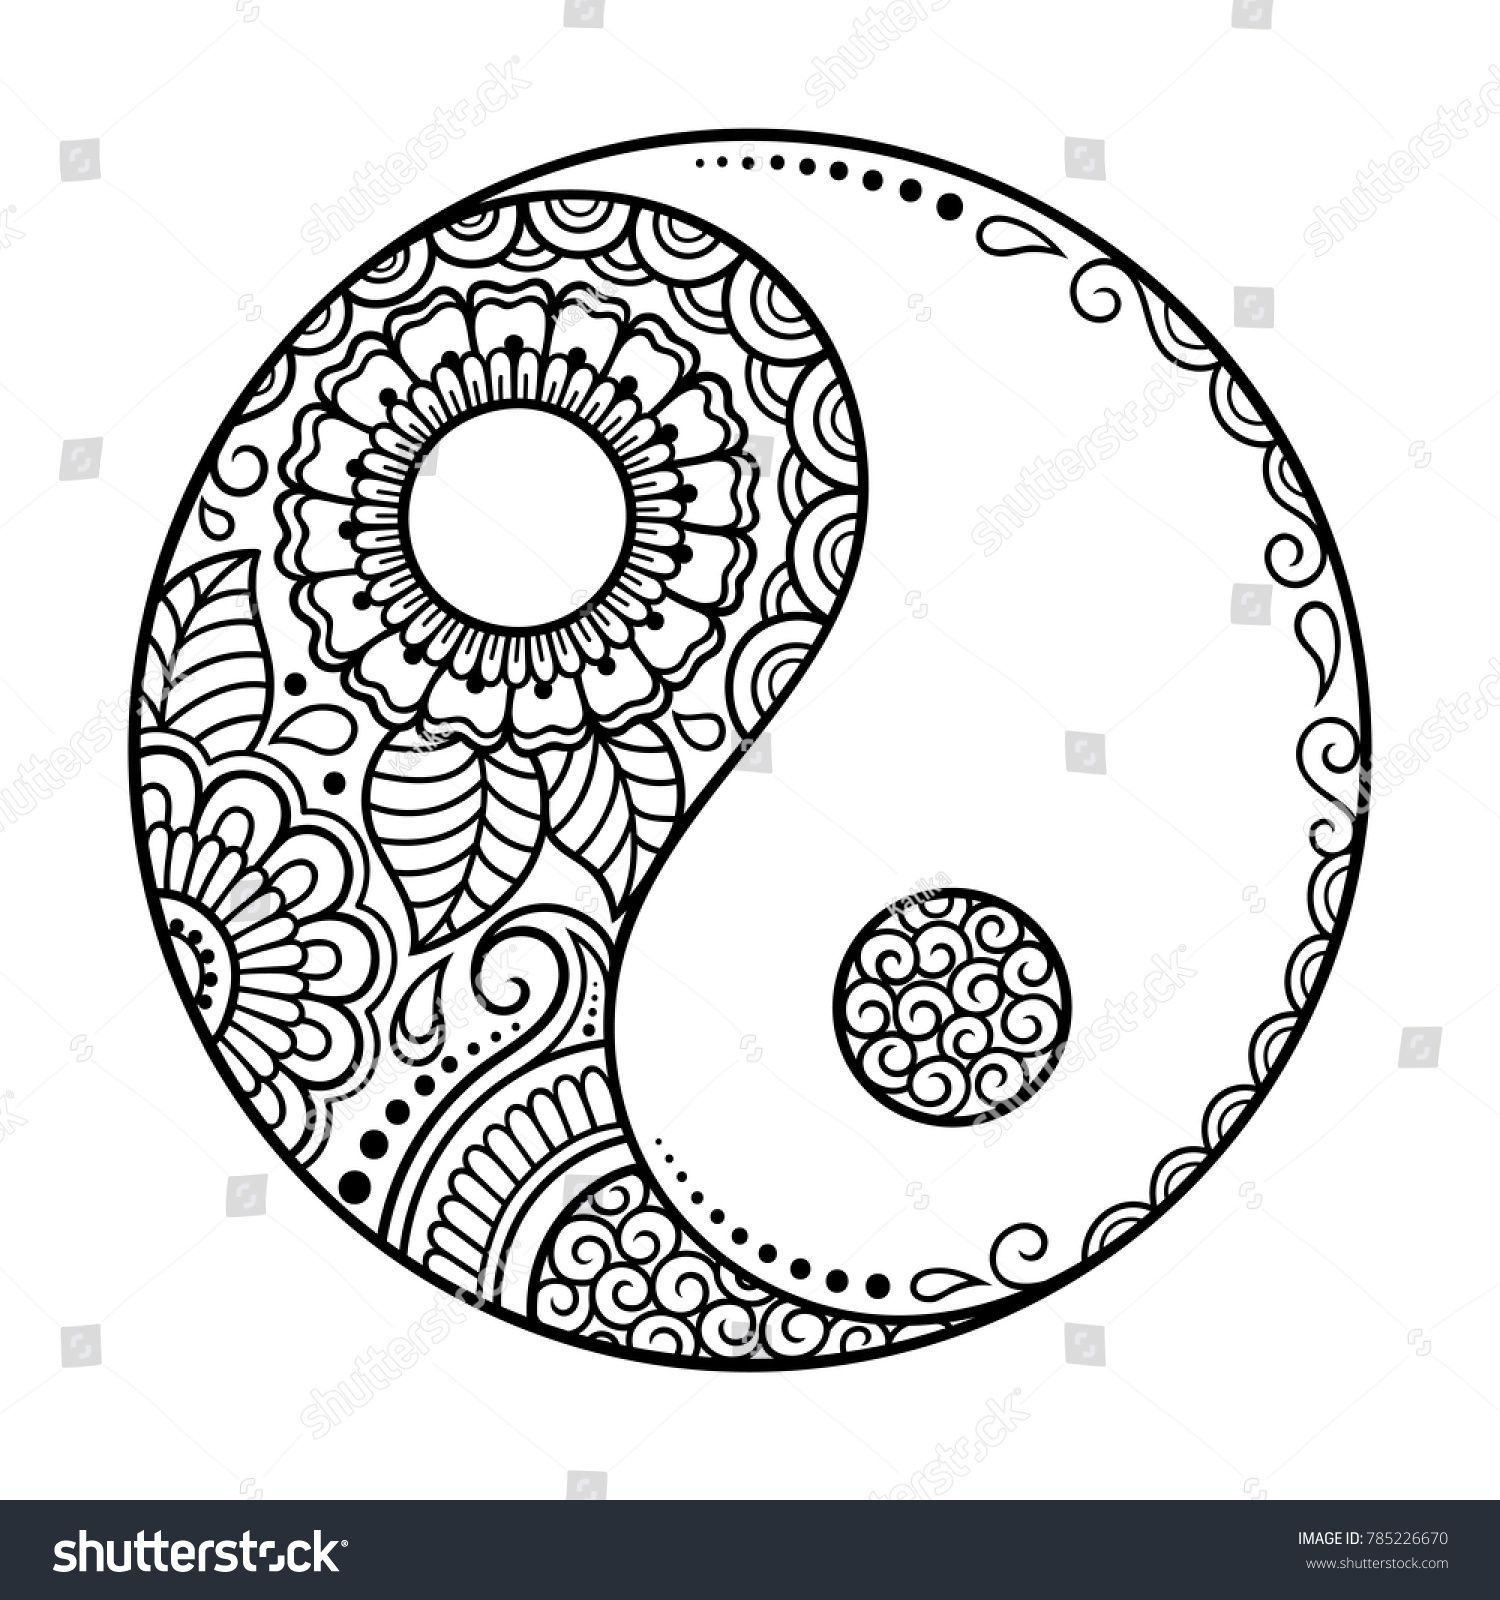 Simbolo disegnato a mano yin-yang. Immagine vettoriale a tema Circular Pattern – Sign Interaction (royalty free) 785226670